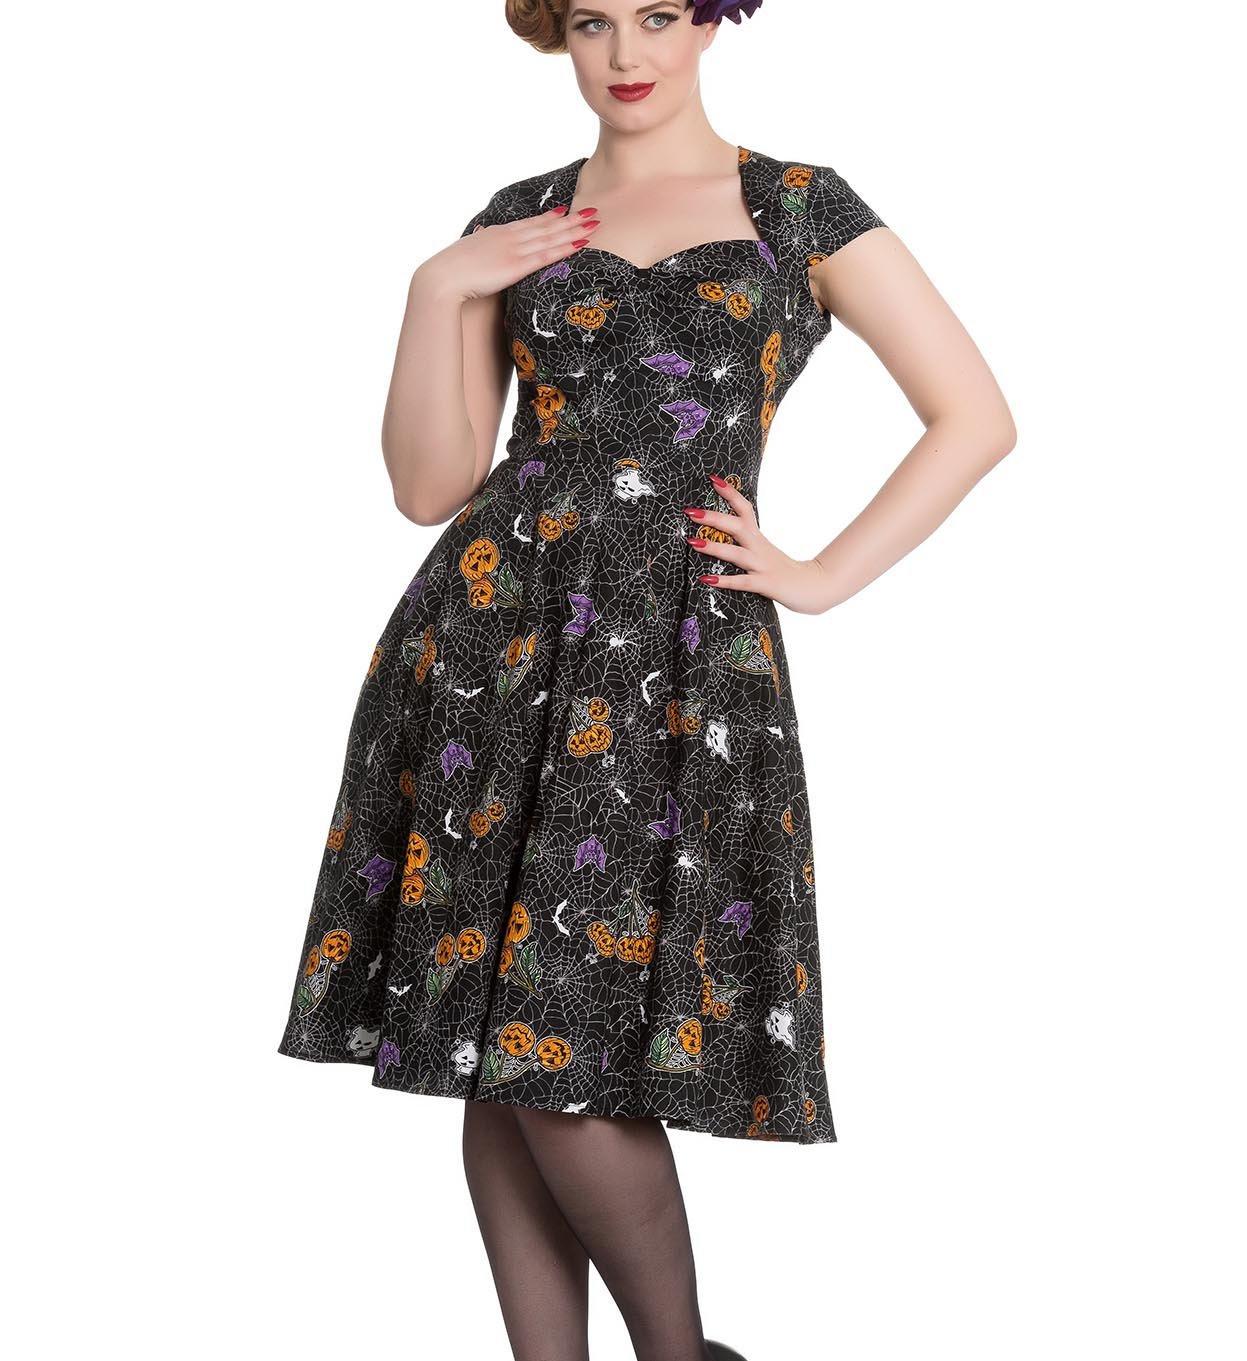 Hell-Bunny-Black-Pinup-50s-Goth-Webs-Dress-HARLOW-Halloween-All-Sizes thumbnail 19